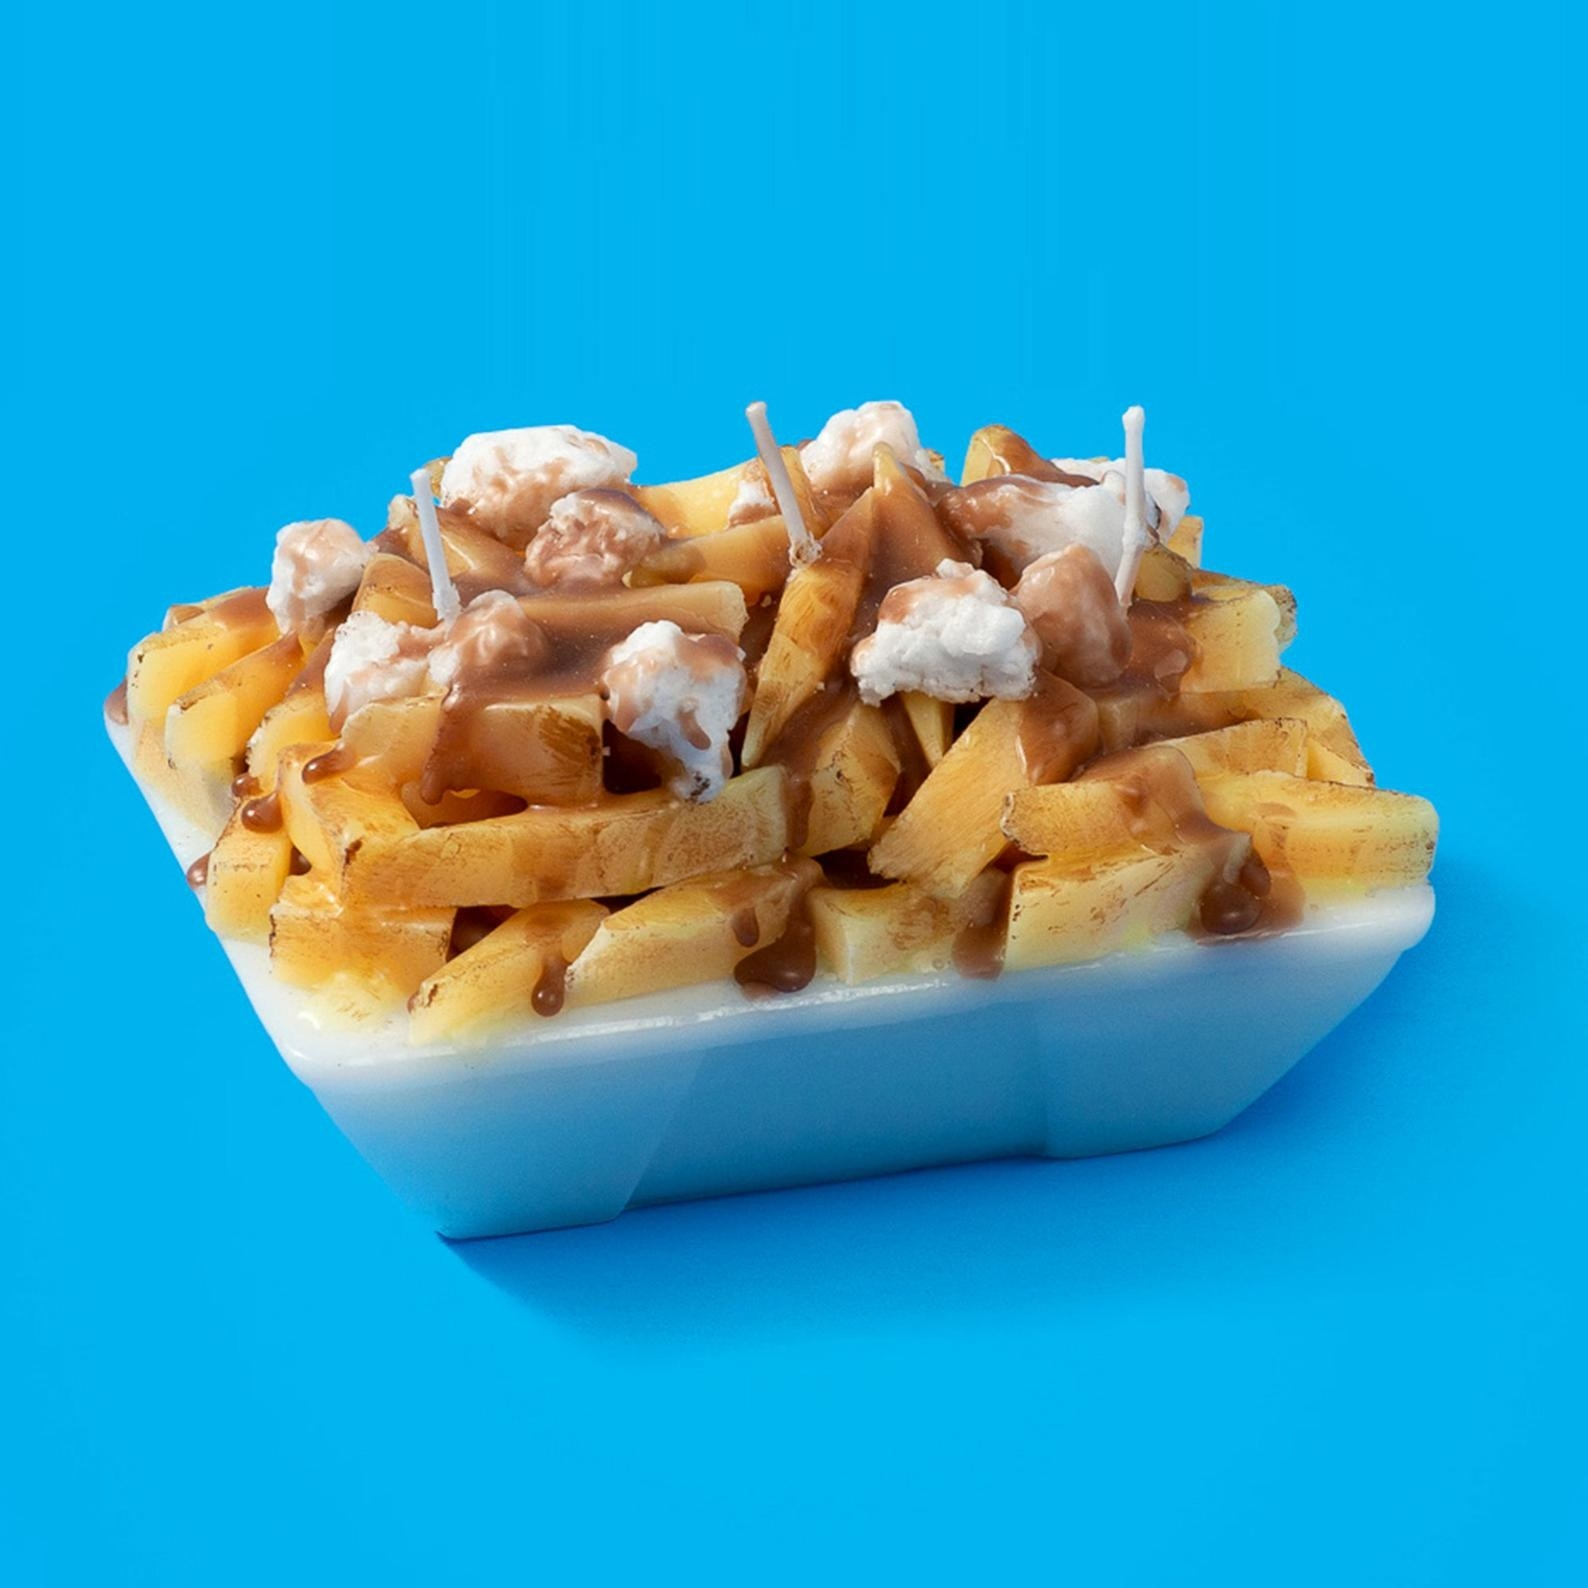 candle that looks like poutine